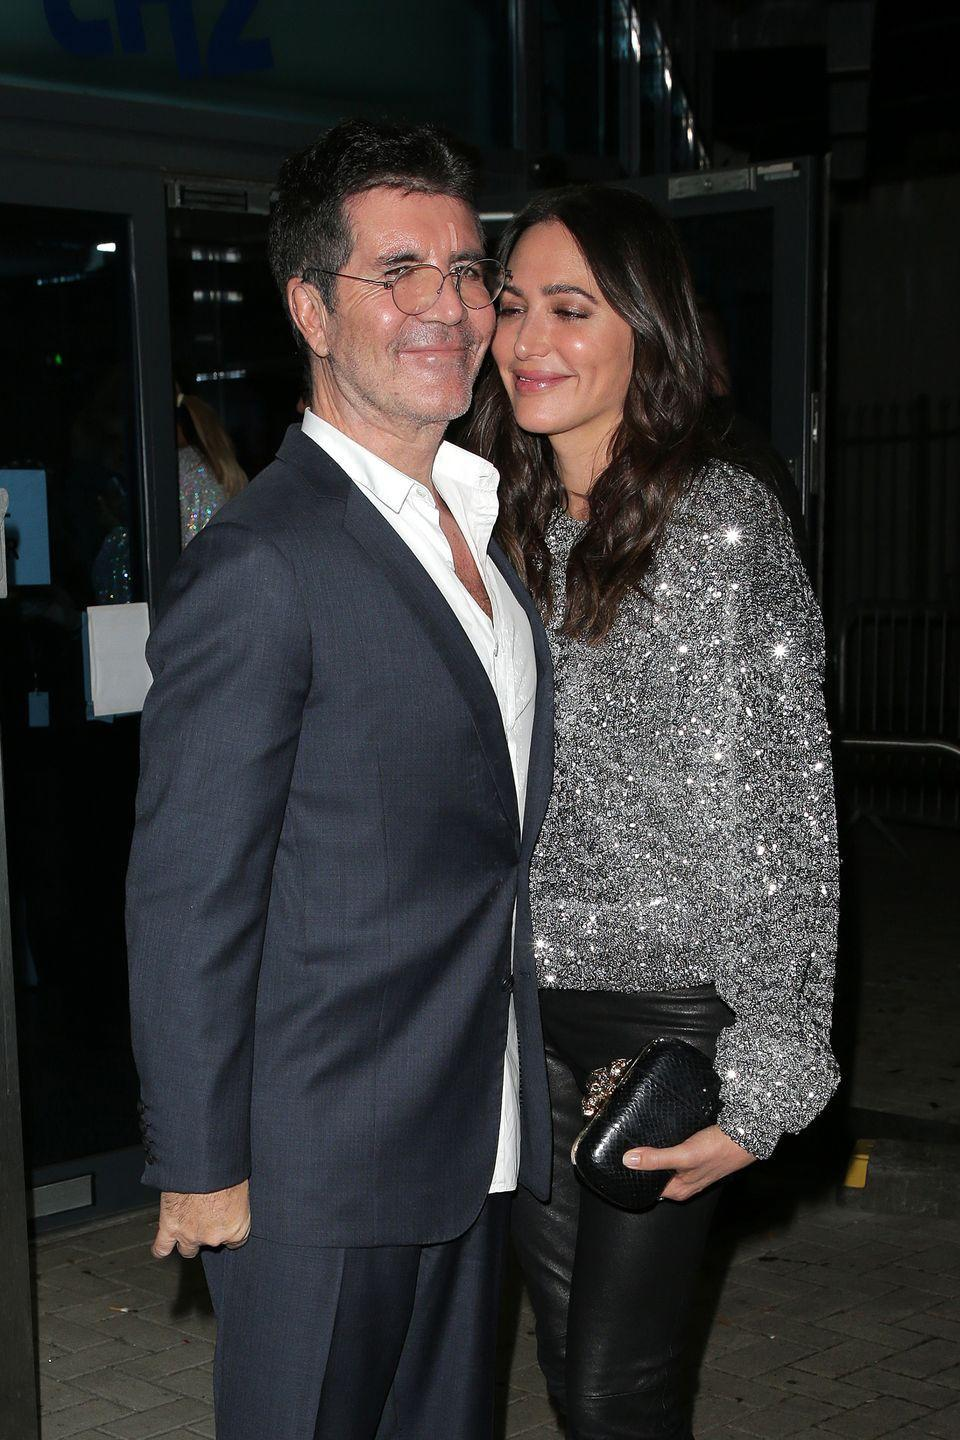 """<p><strong>Age gap:</strong> 18 years</p><p>Simon and Lauren <a href=""""https://www.goodhousekeeping.com/life/entertainment/a20900420/simon-cowell-partner-lauren-silverman/"""" rel=""""nofollow noopener"""" target=""""_blank"""" data-ylk=""""slk:started secretly dating"""" class=""""link rapid-noclick-resp"""">started secretly dating</a> while she was married to her first husband, real estate mogul Andrew Silverman. However, after finding out she was pregnant with Simon's son in 2013, the two were forced to go public with their relationship. </p>"""